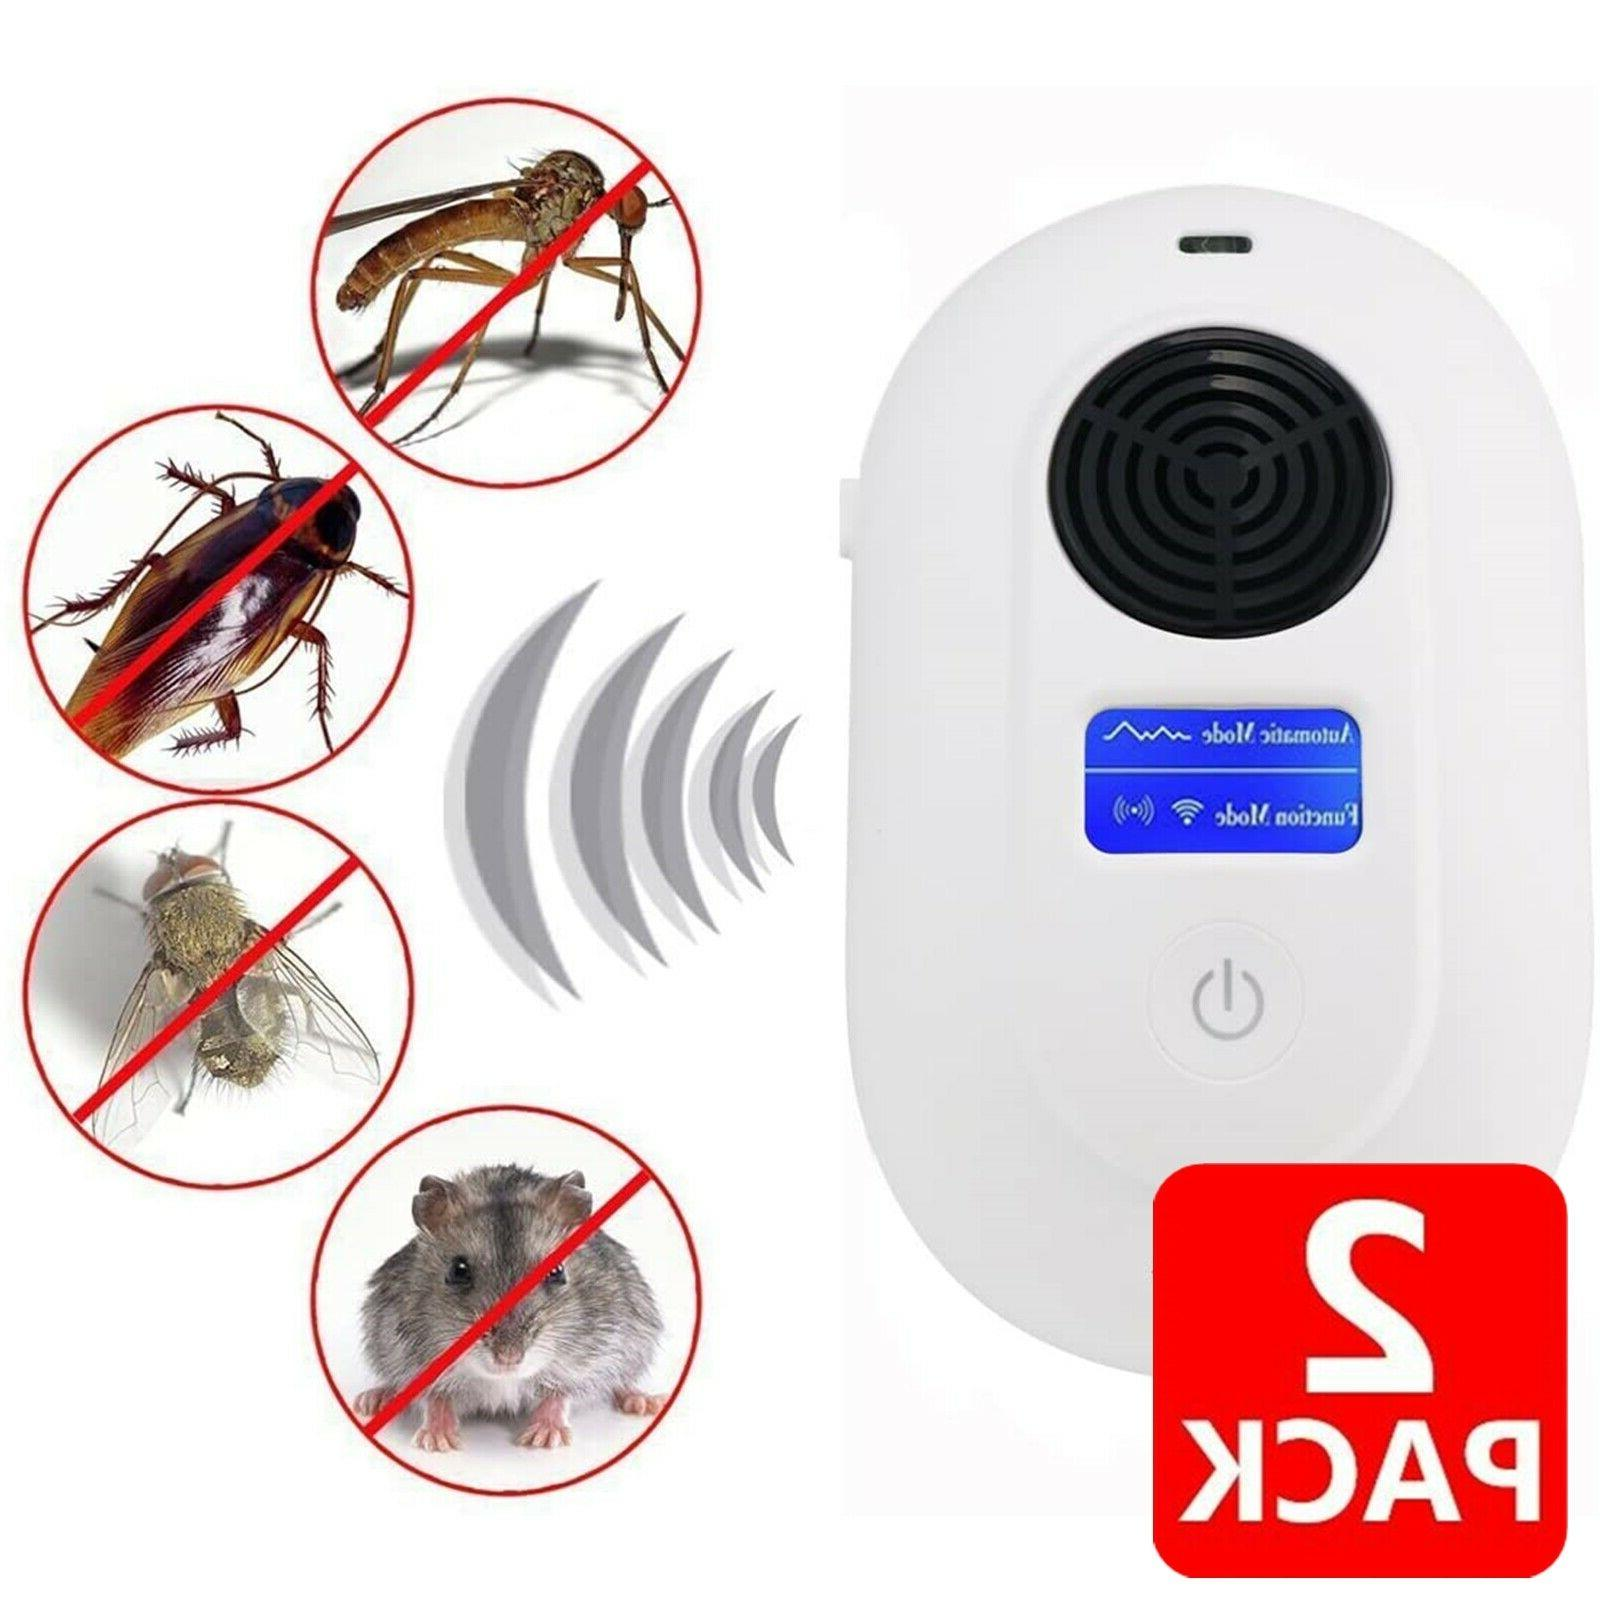 2x ultrasonic pest repeller electronic plug in